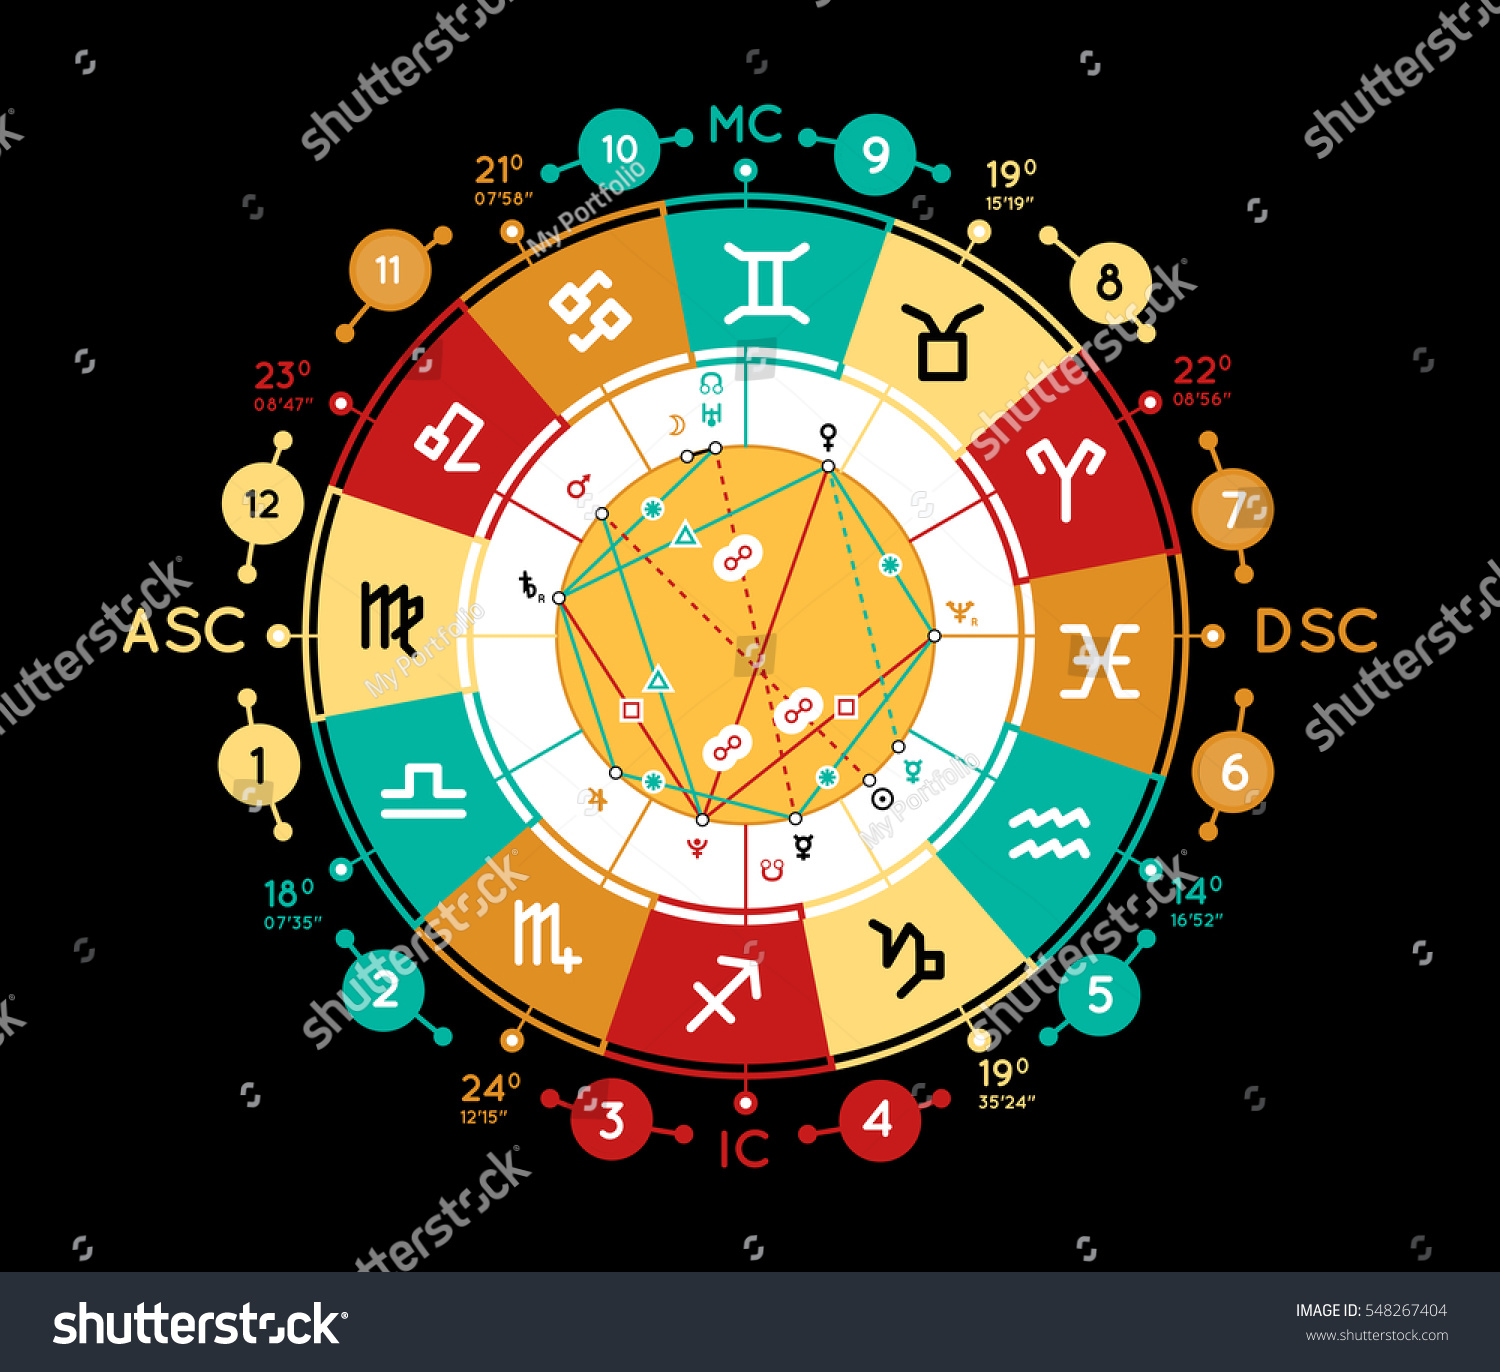 Traditional european roulette table vector illustration stock vector - Example Blank Natal Chart Vector Illustration